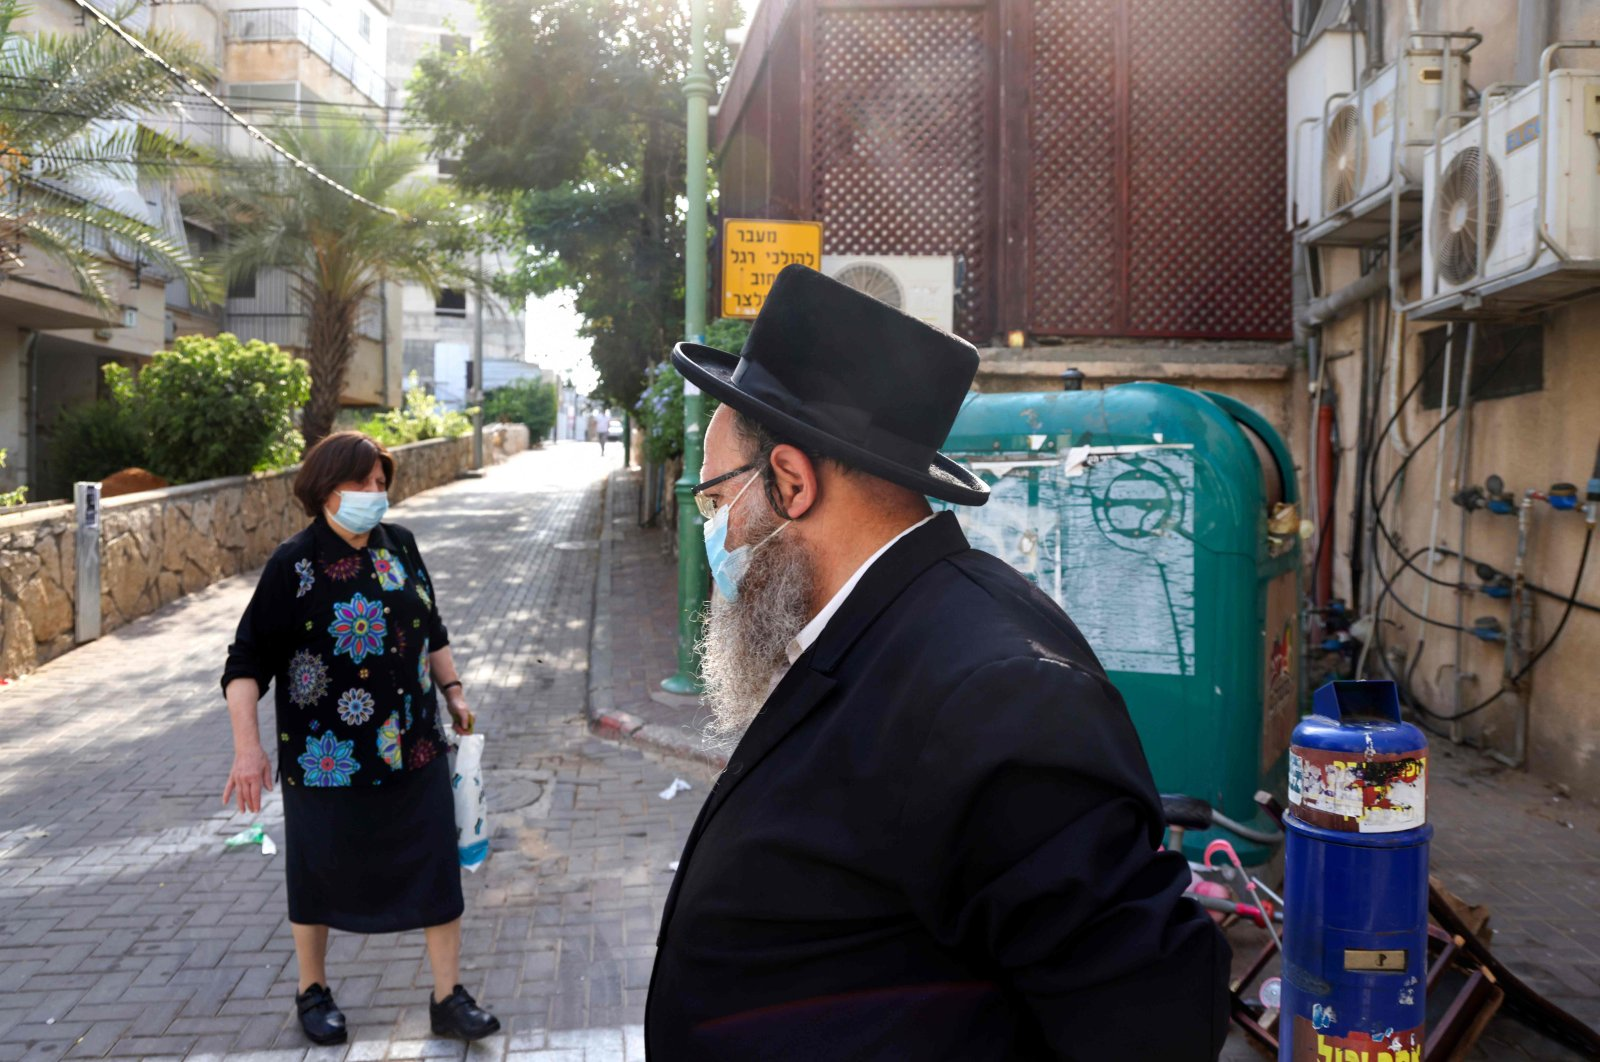 Ultra-Orthodox Jews wearing protective face masks walk in the ultra-Orthodox city of Bnei Brak, near Tel Aviv, on Sept. 6, 2020. (AFP Photo)